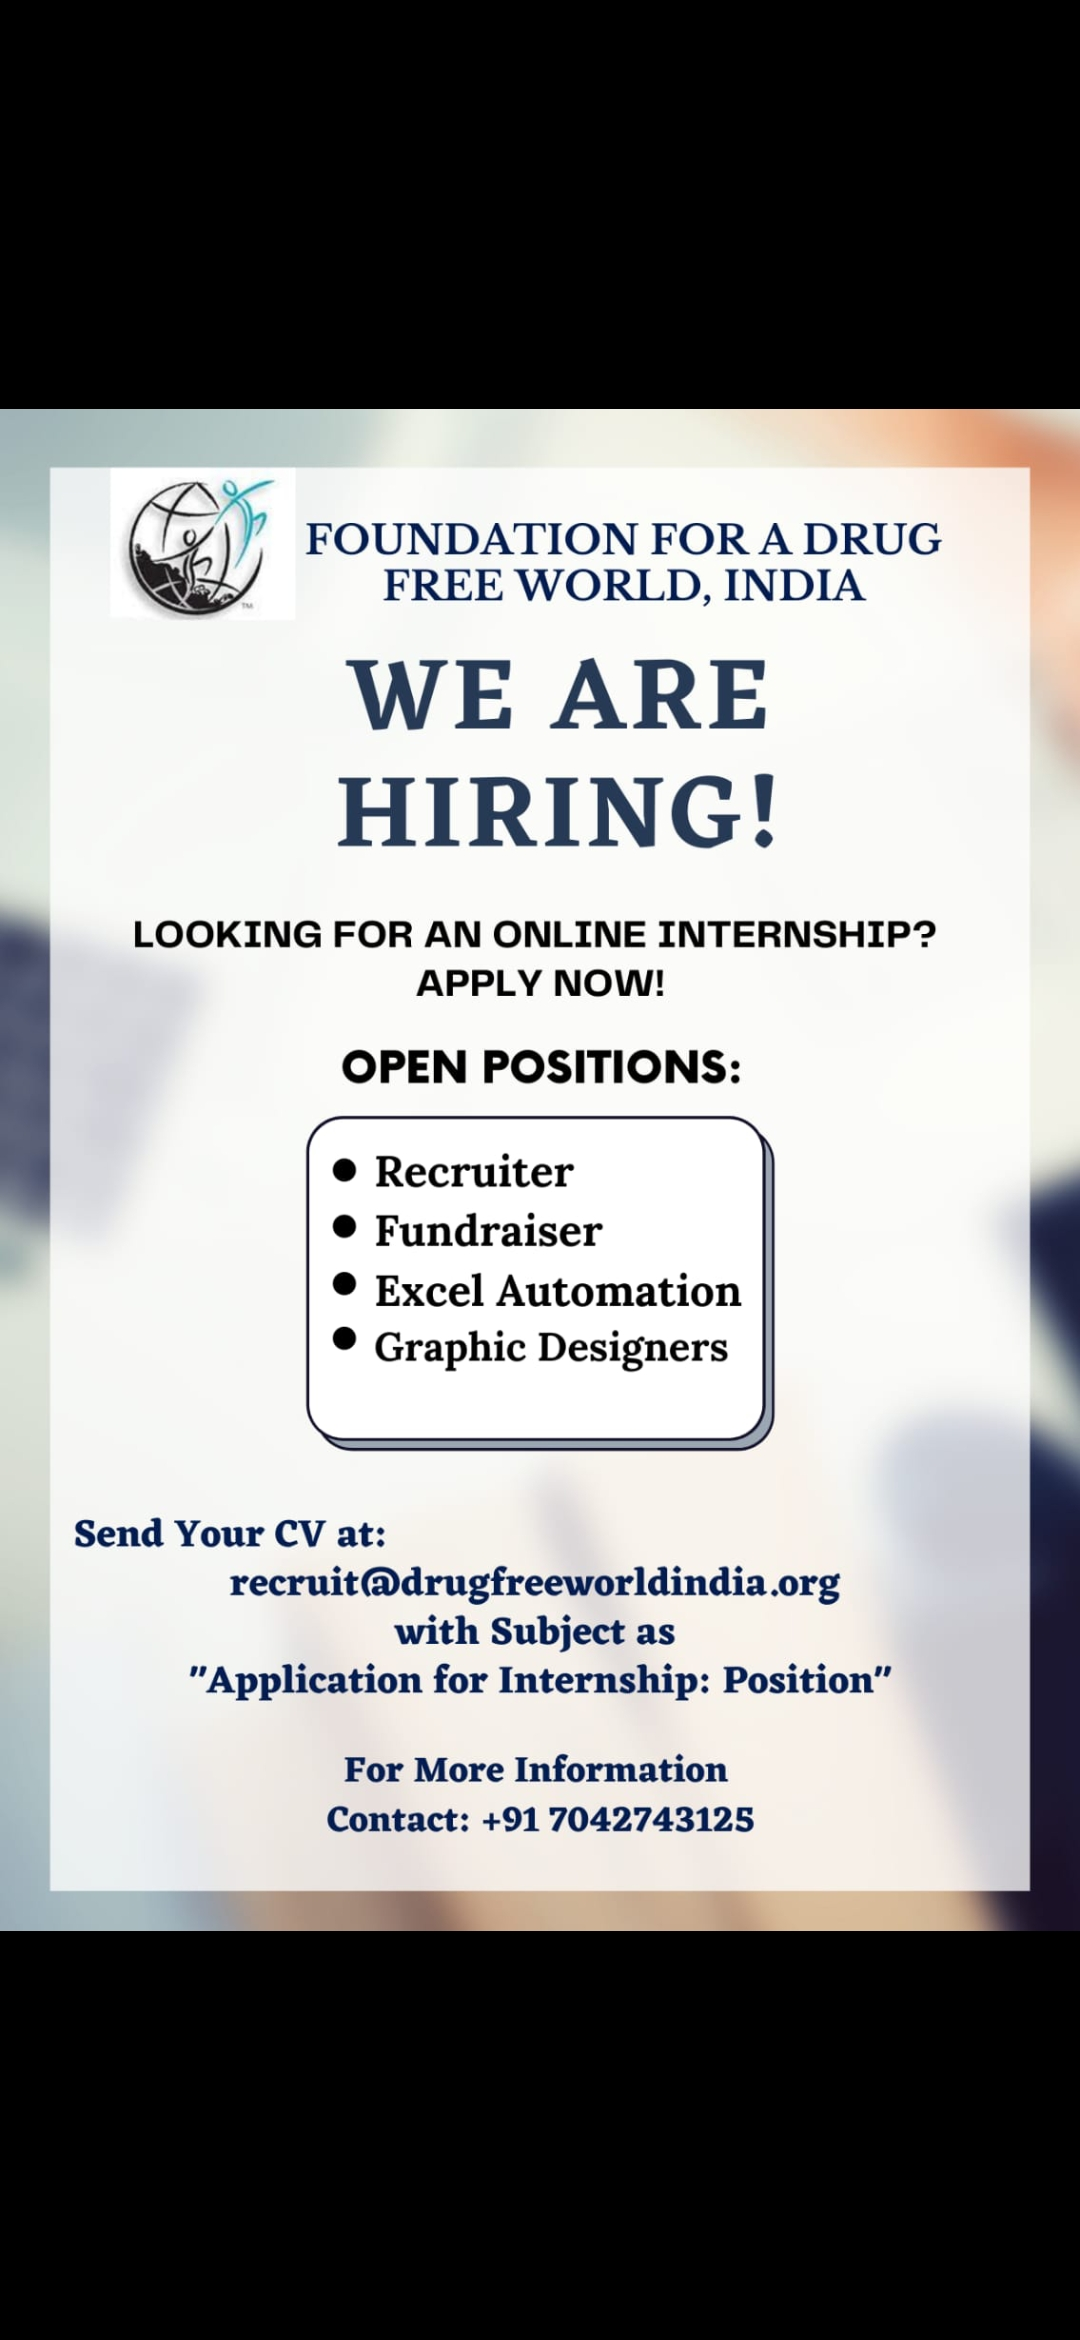 FOUNDATION FOR A DRUG-FREE WORLD, INDIA : We are Hiring